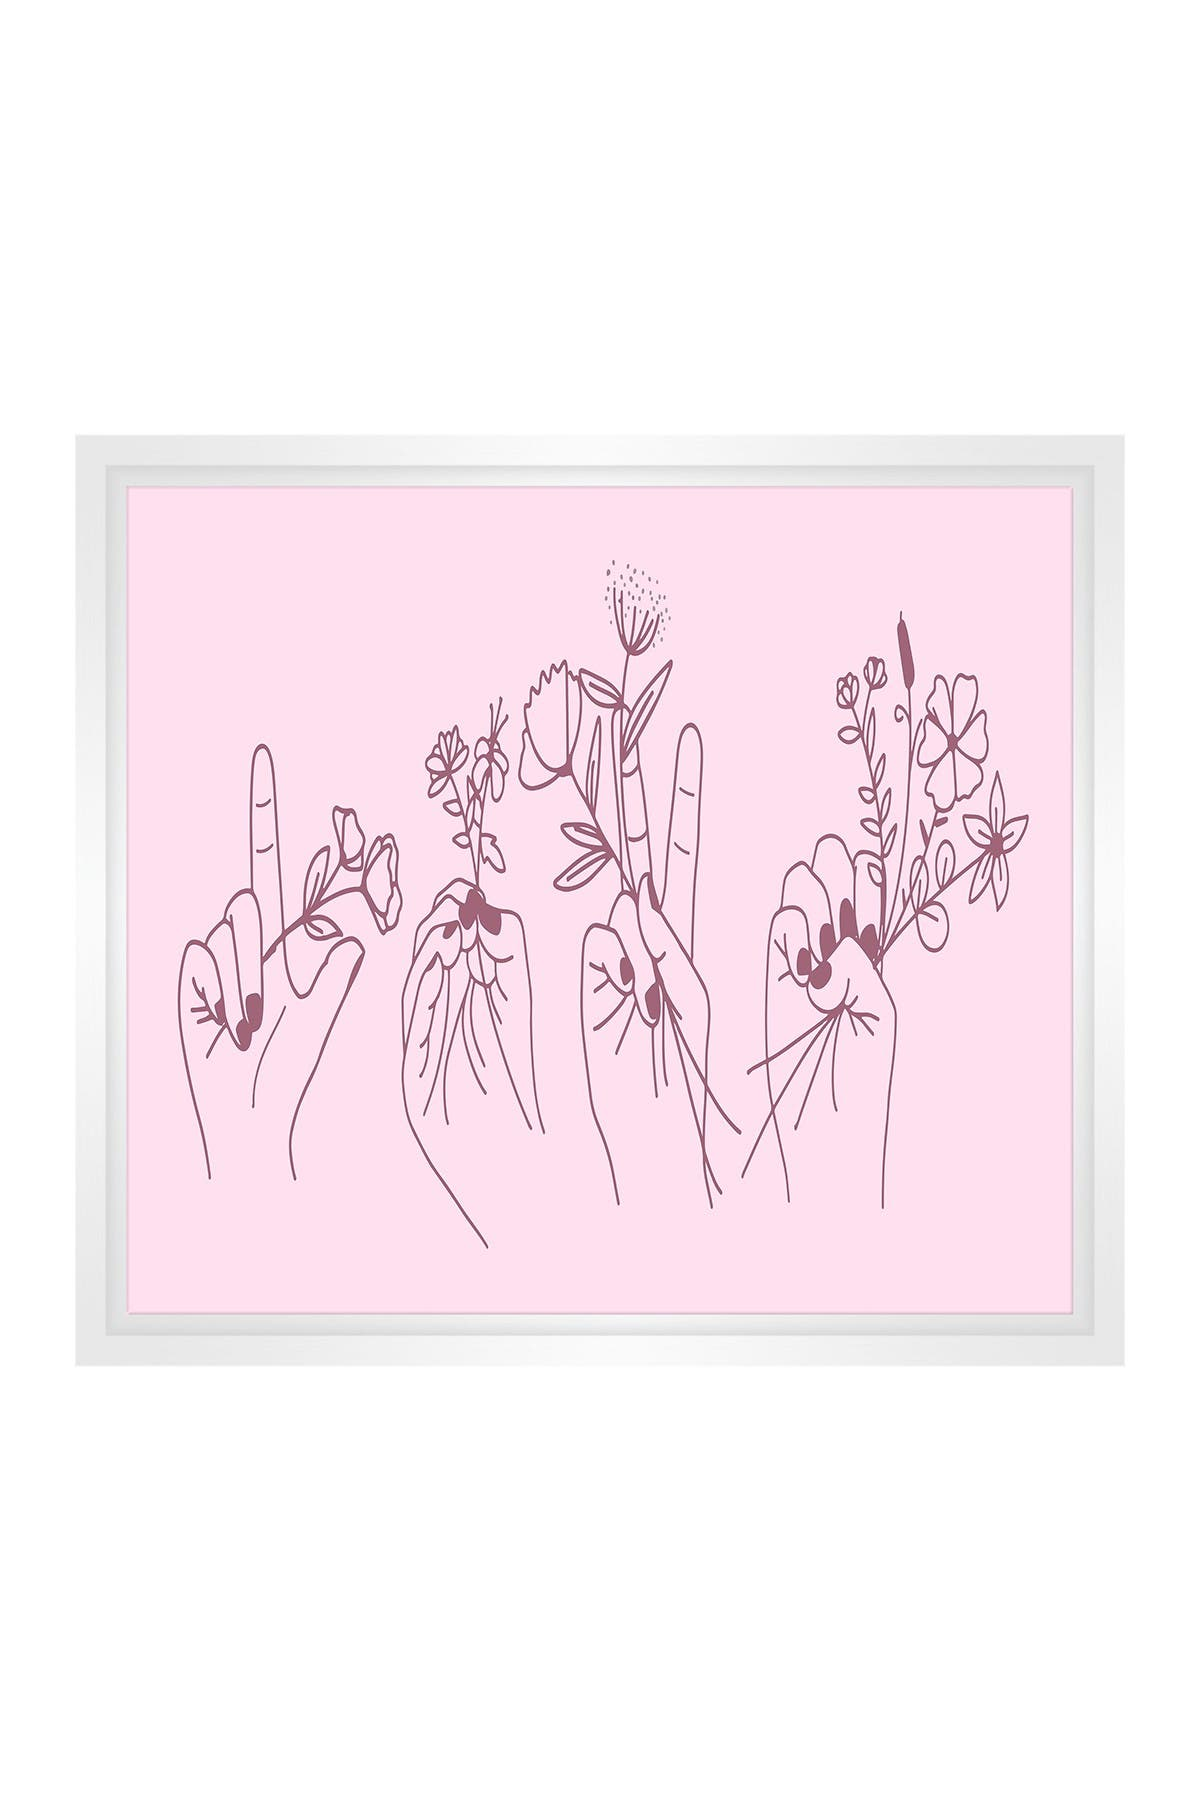 Image of PTM Images Small Line Drawing #17 Rectangle Canvas